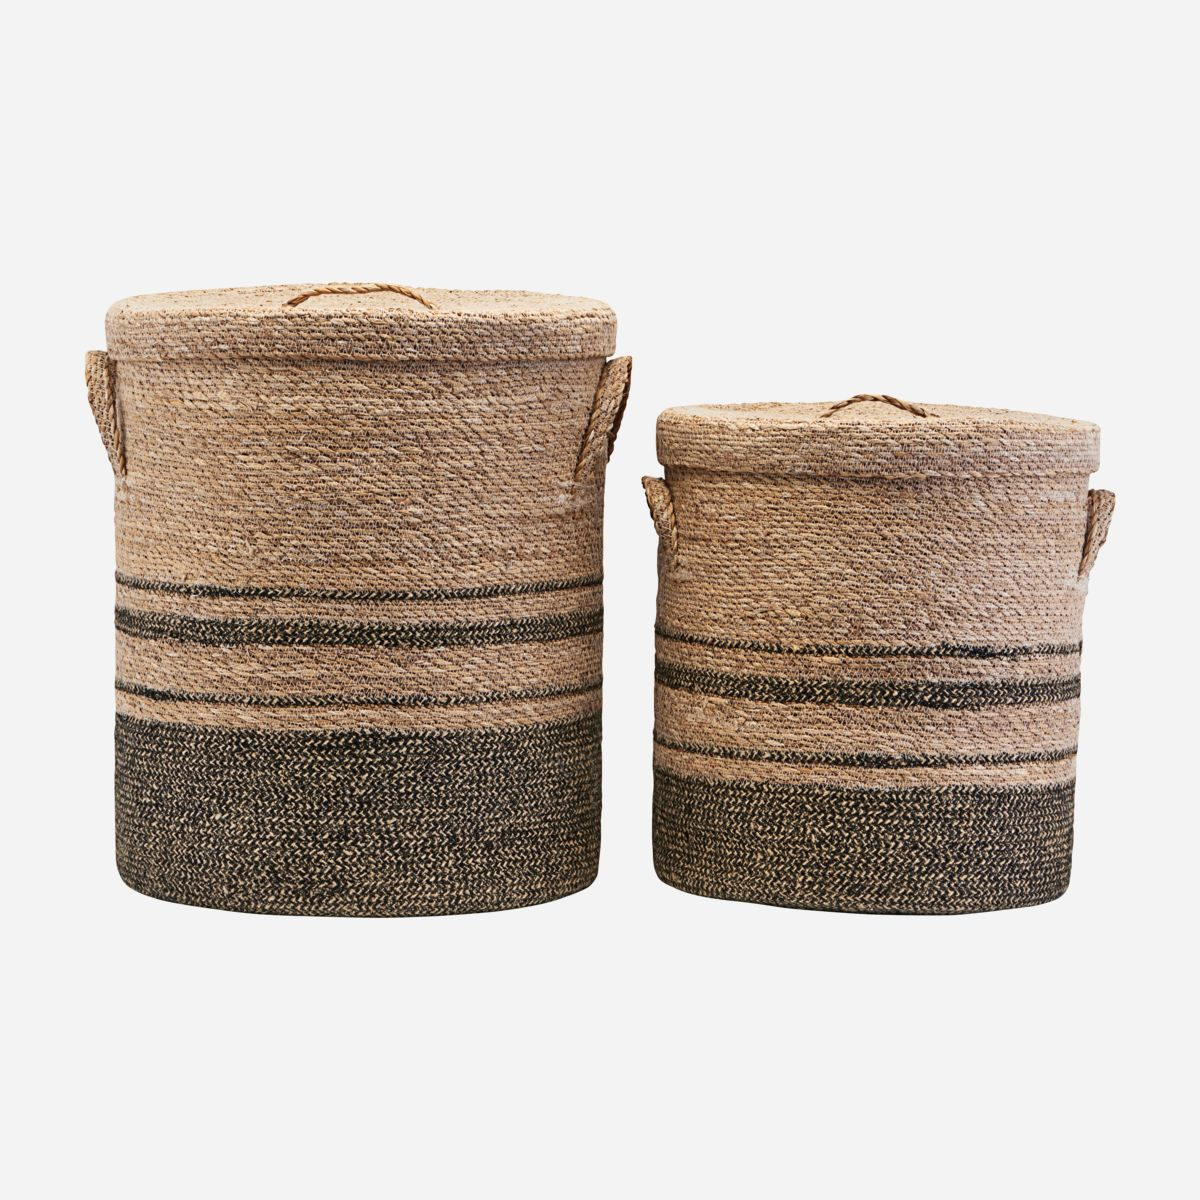 Image of   Storage w. lid, Laundry, Set of 2 sizes